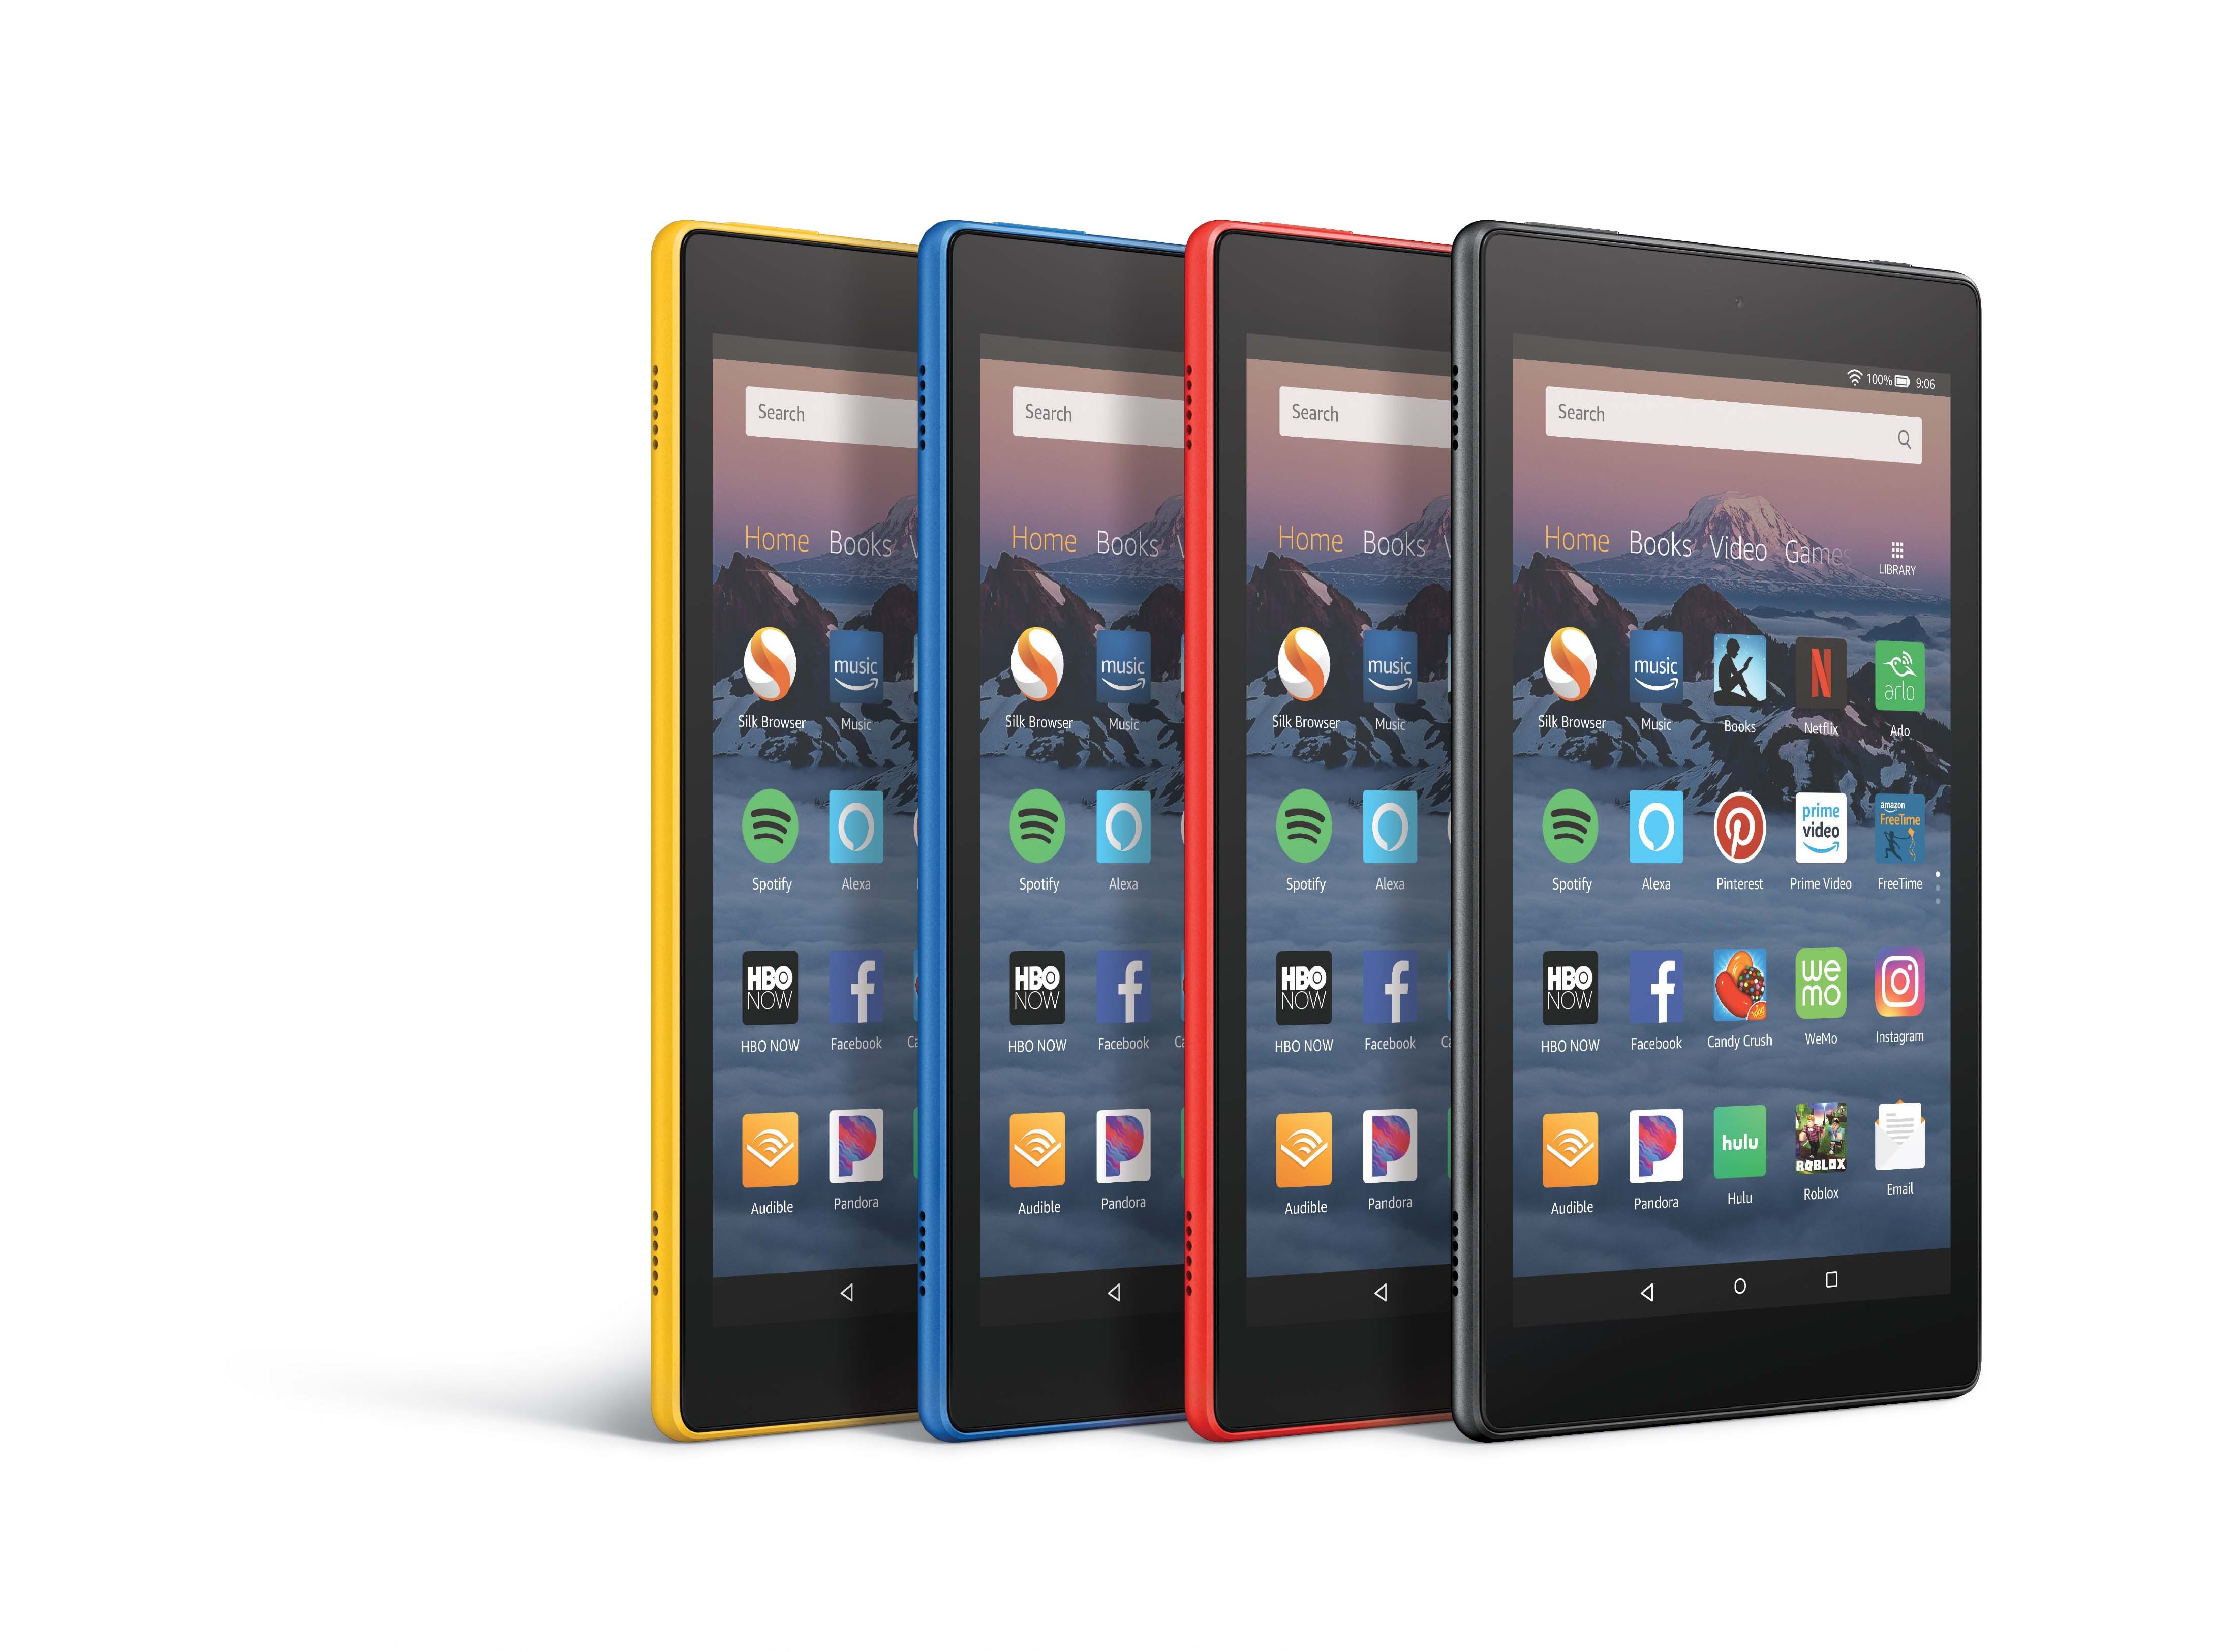 Amazon Announces All New Fire Hd 8 With Alexa Hands Free